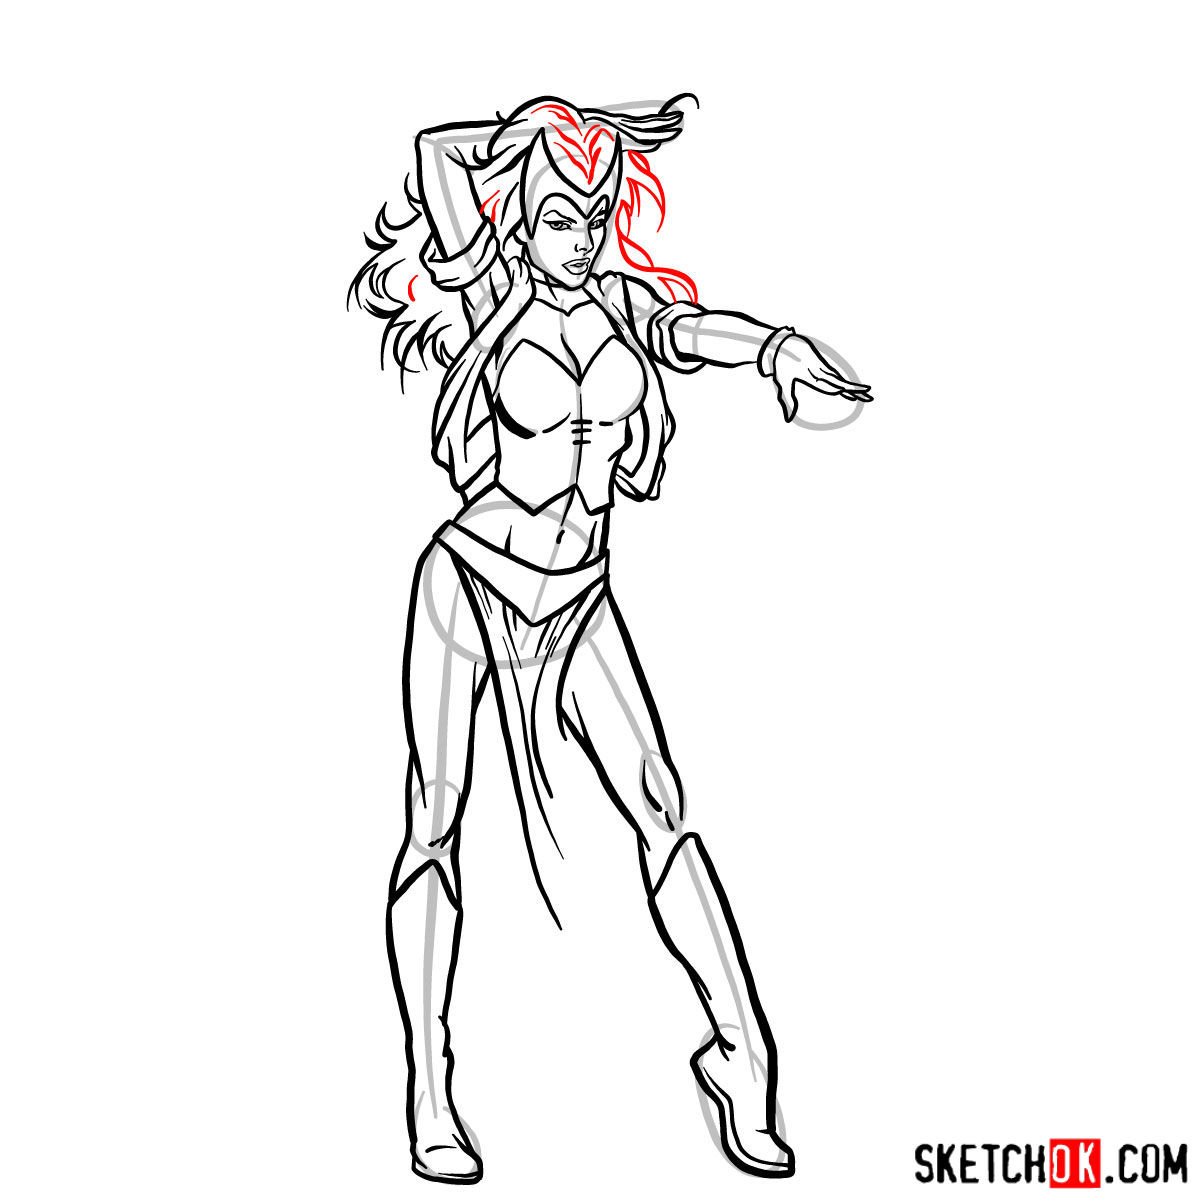 How to draw Scarlet Witch from Marvel Comics - step 13